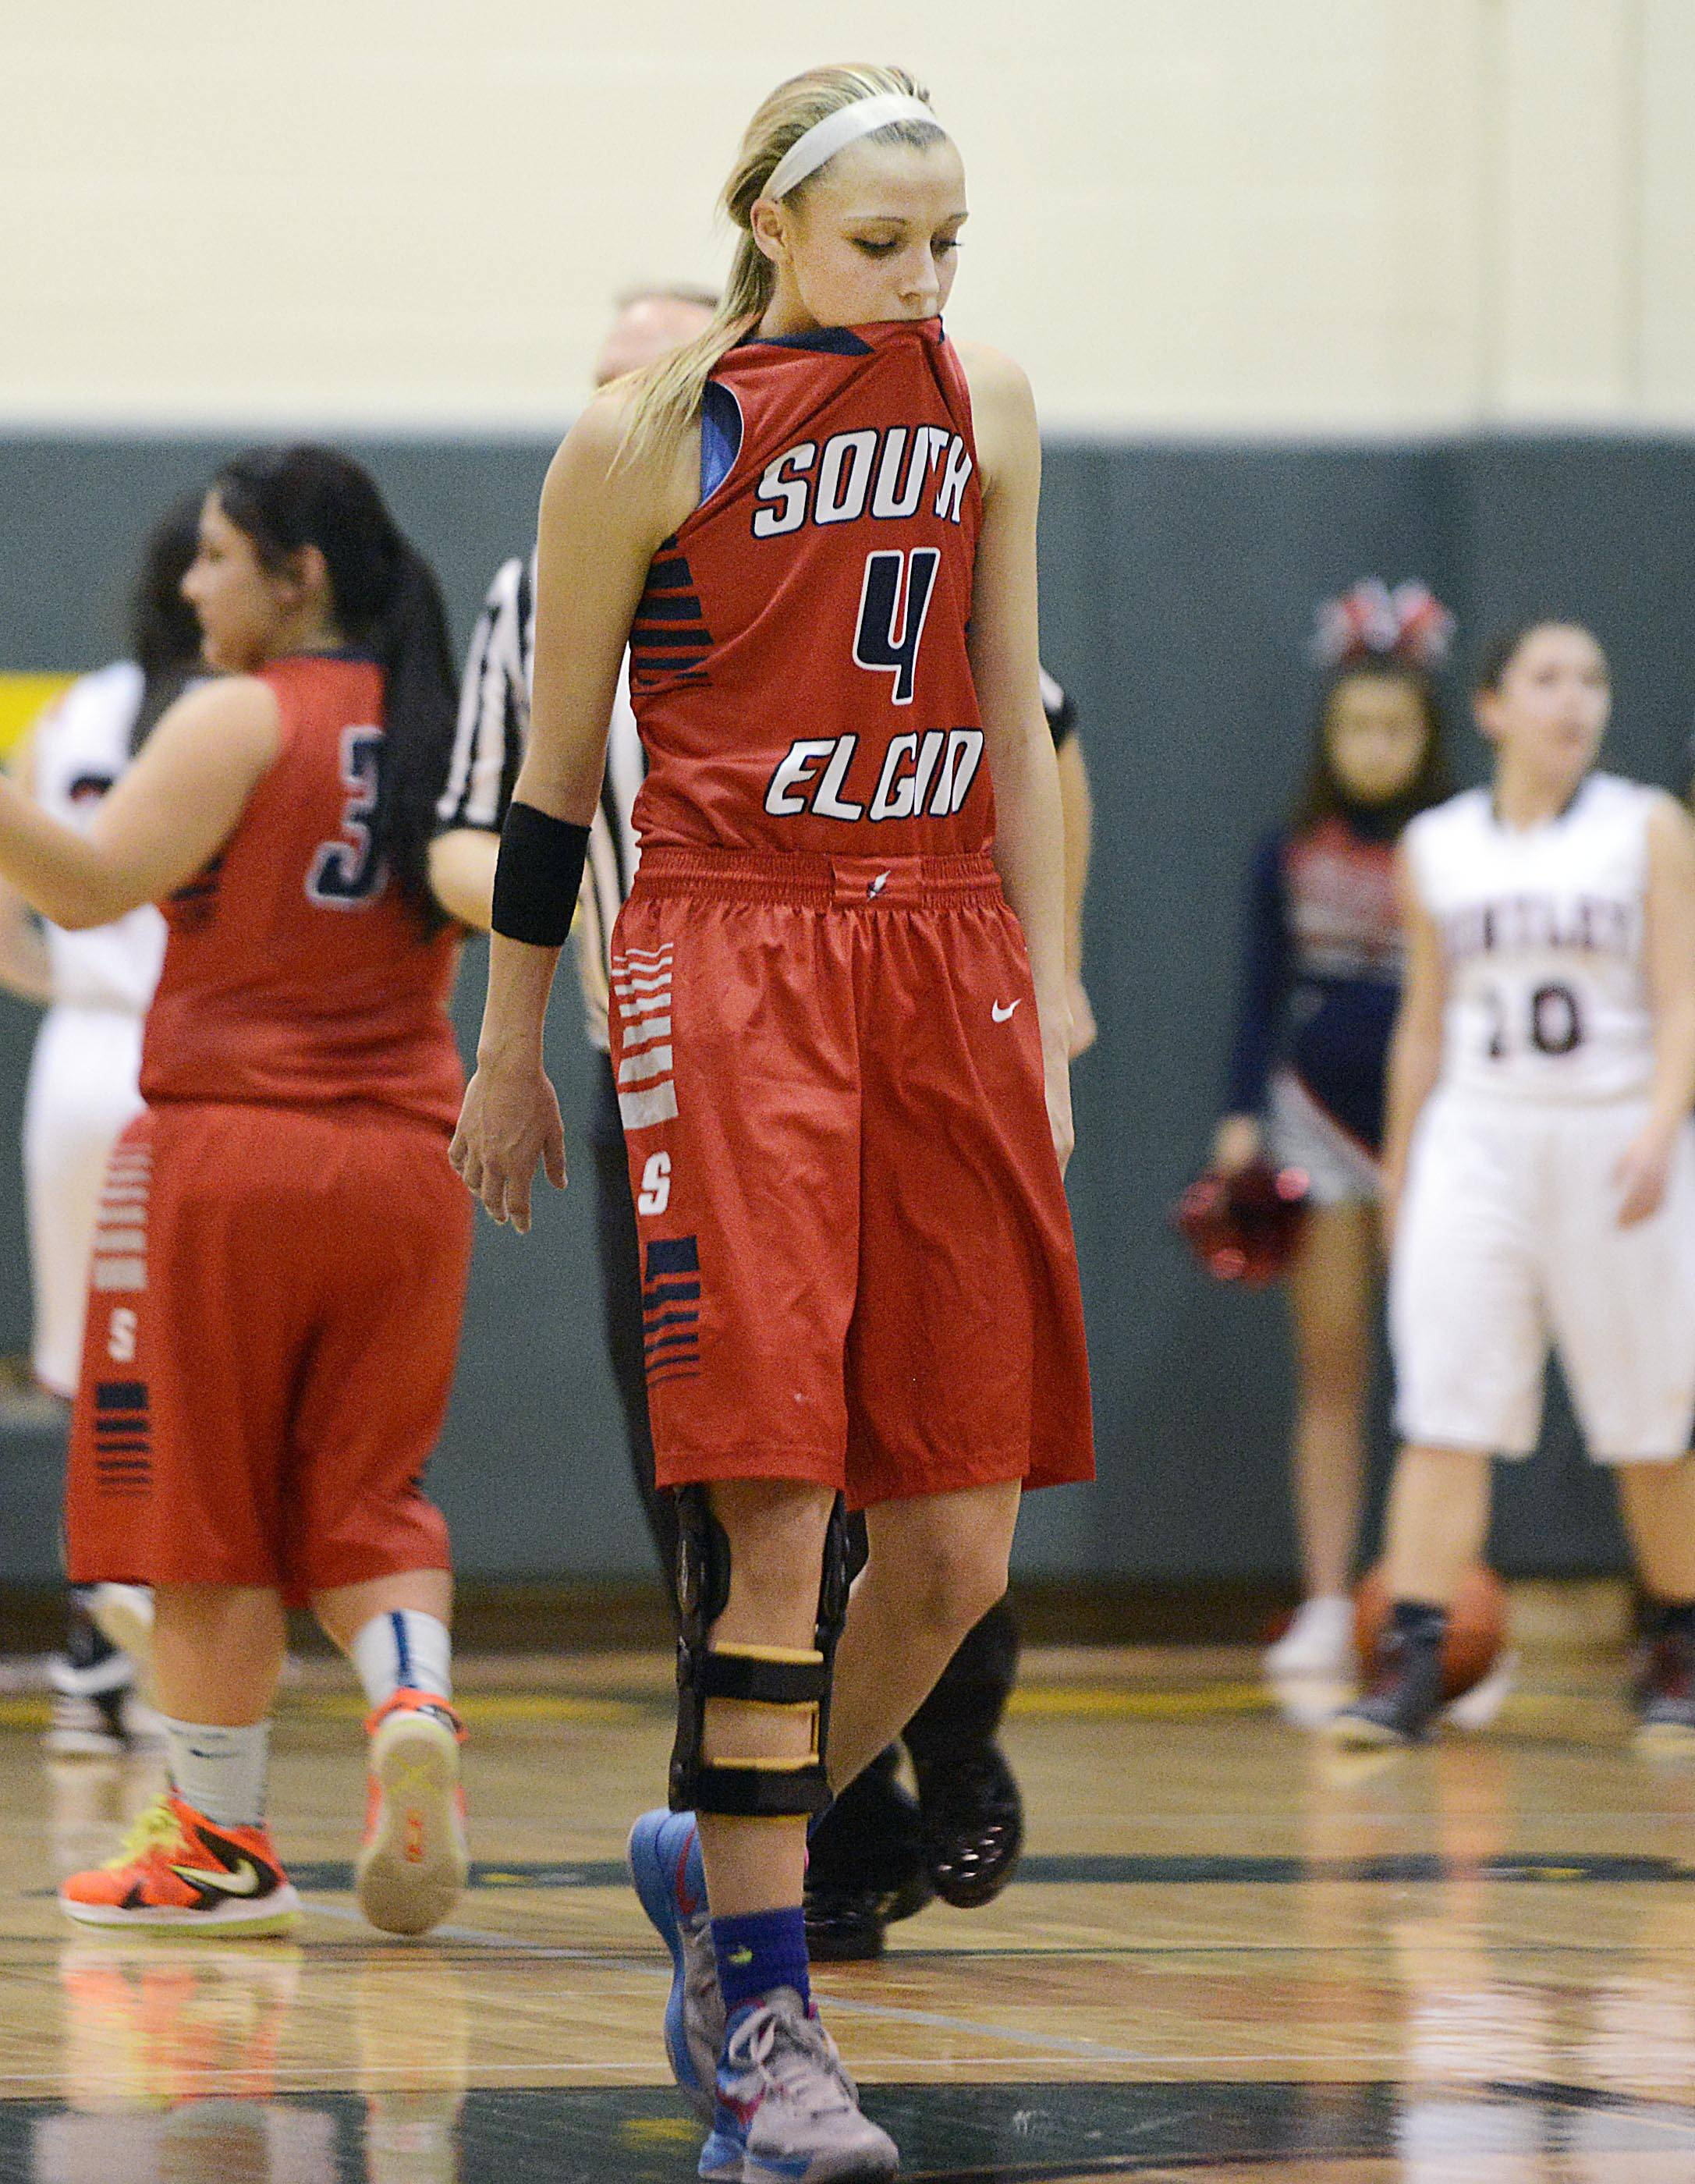 South Elgin's Savanah Uveges reacts late in the loss to Huntley in the Class 4A Crystal Lake South sectional game Tuesday.